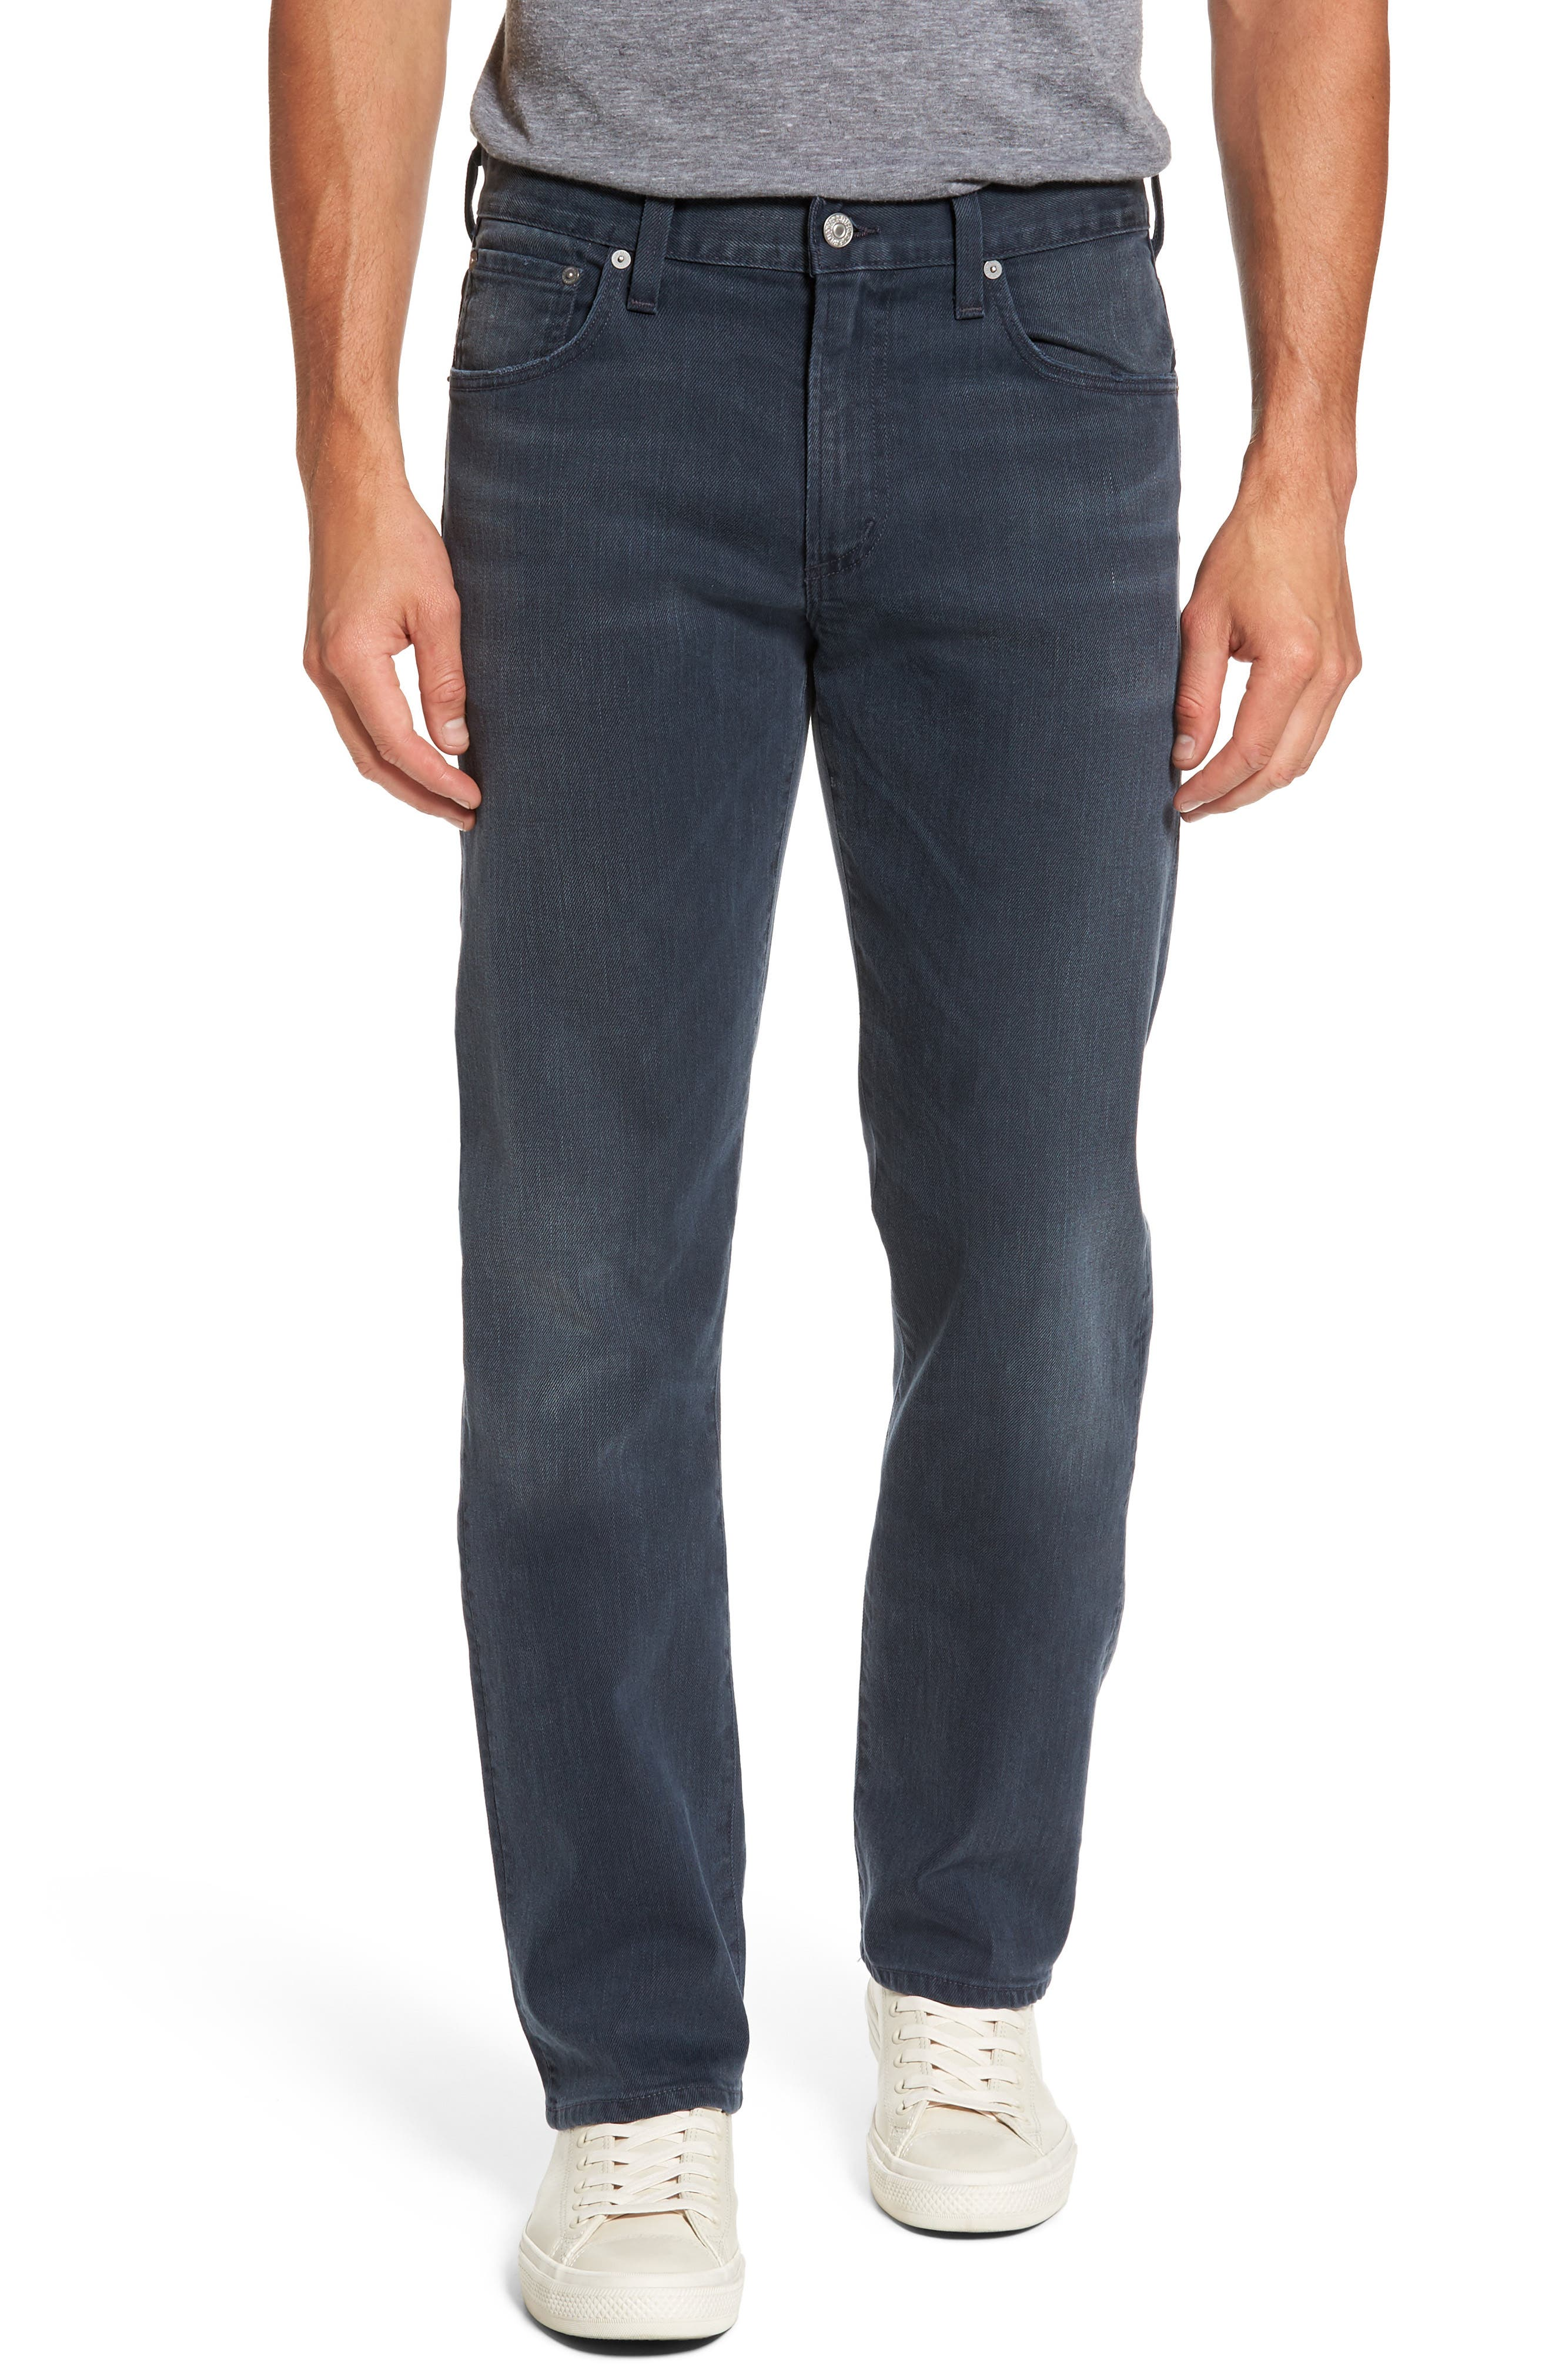 Alternate Image 1 Selected - Citizens of Humanity Sid Straight Leg Jeans (Blue Skies)